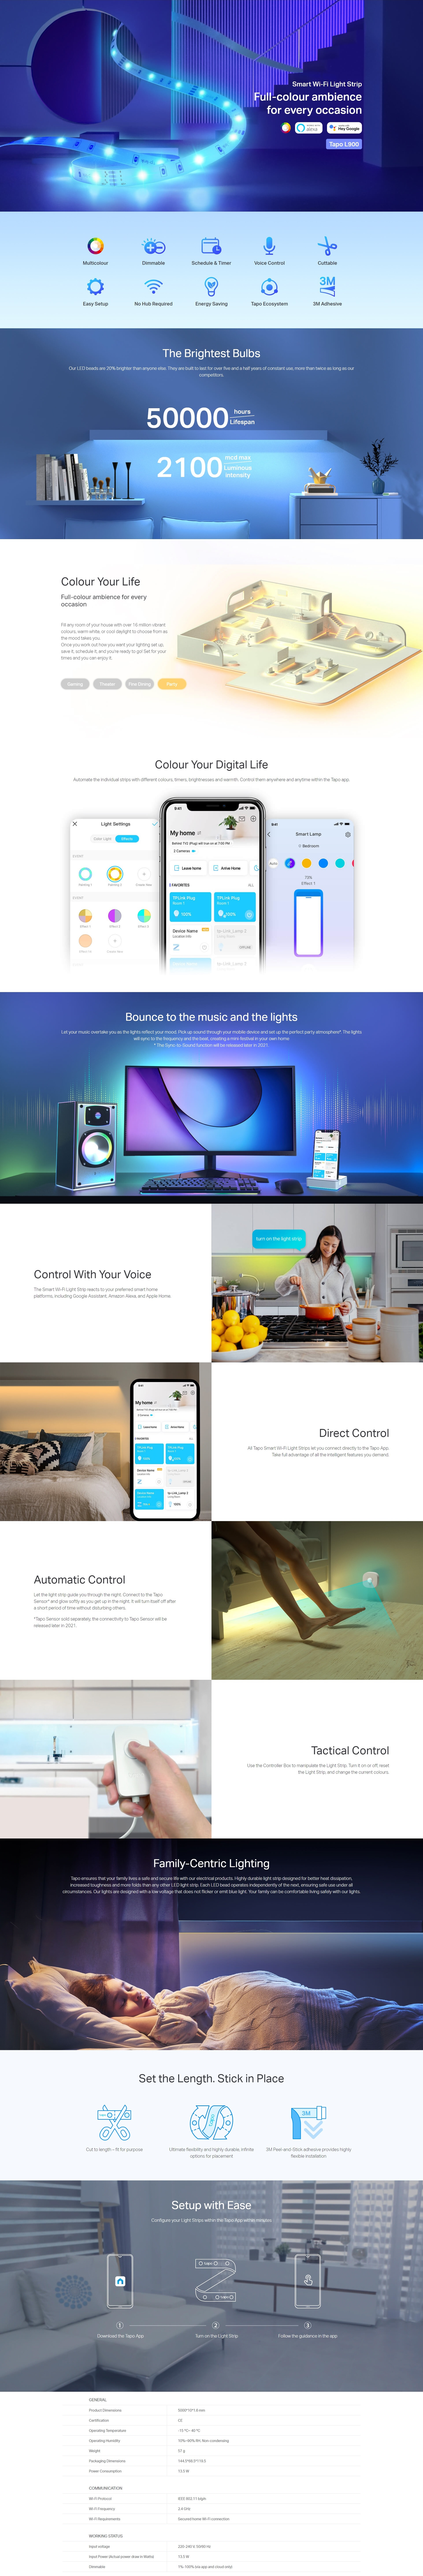 A large marketing image providing additional information about the product TP-LINK Smart Wi-Fi Light Strip - Additional alt info not provided